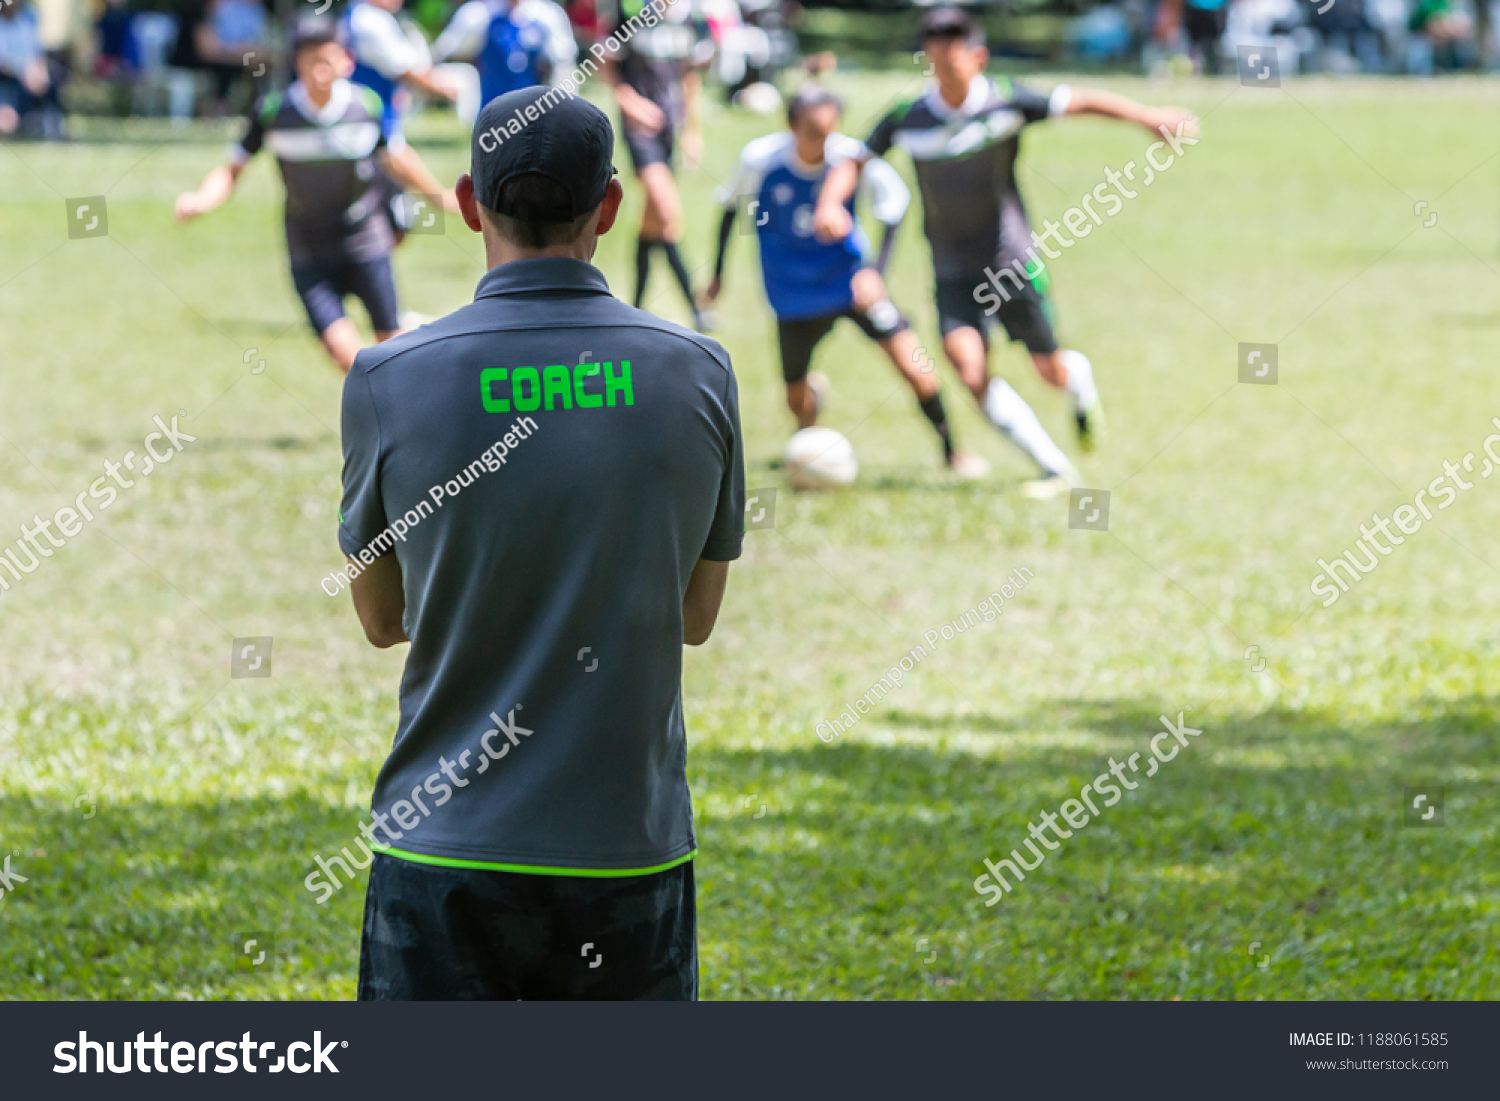 ecbc4d507 Male soccer or football coach in gray shirt with word COACH written on  back, standing on the sideline watching his team play, good for sport or  coaching ...